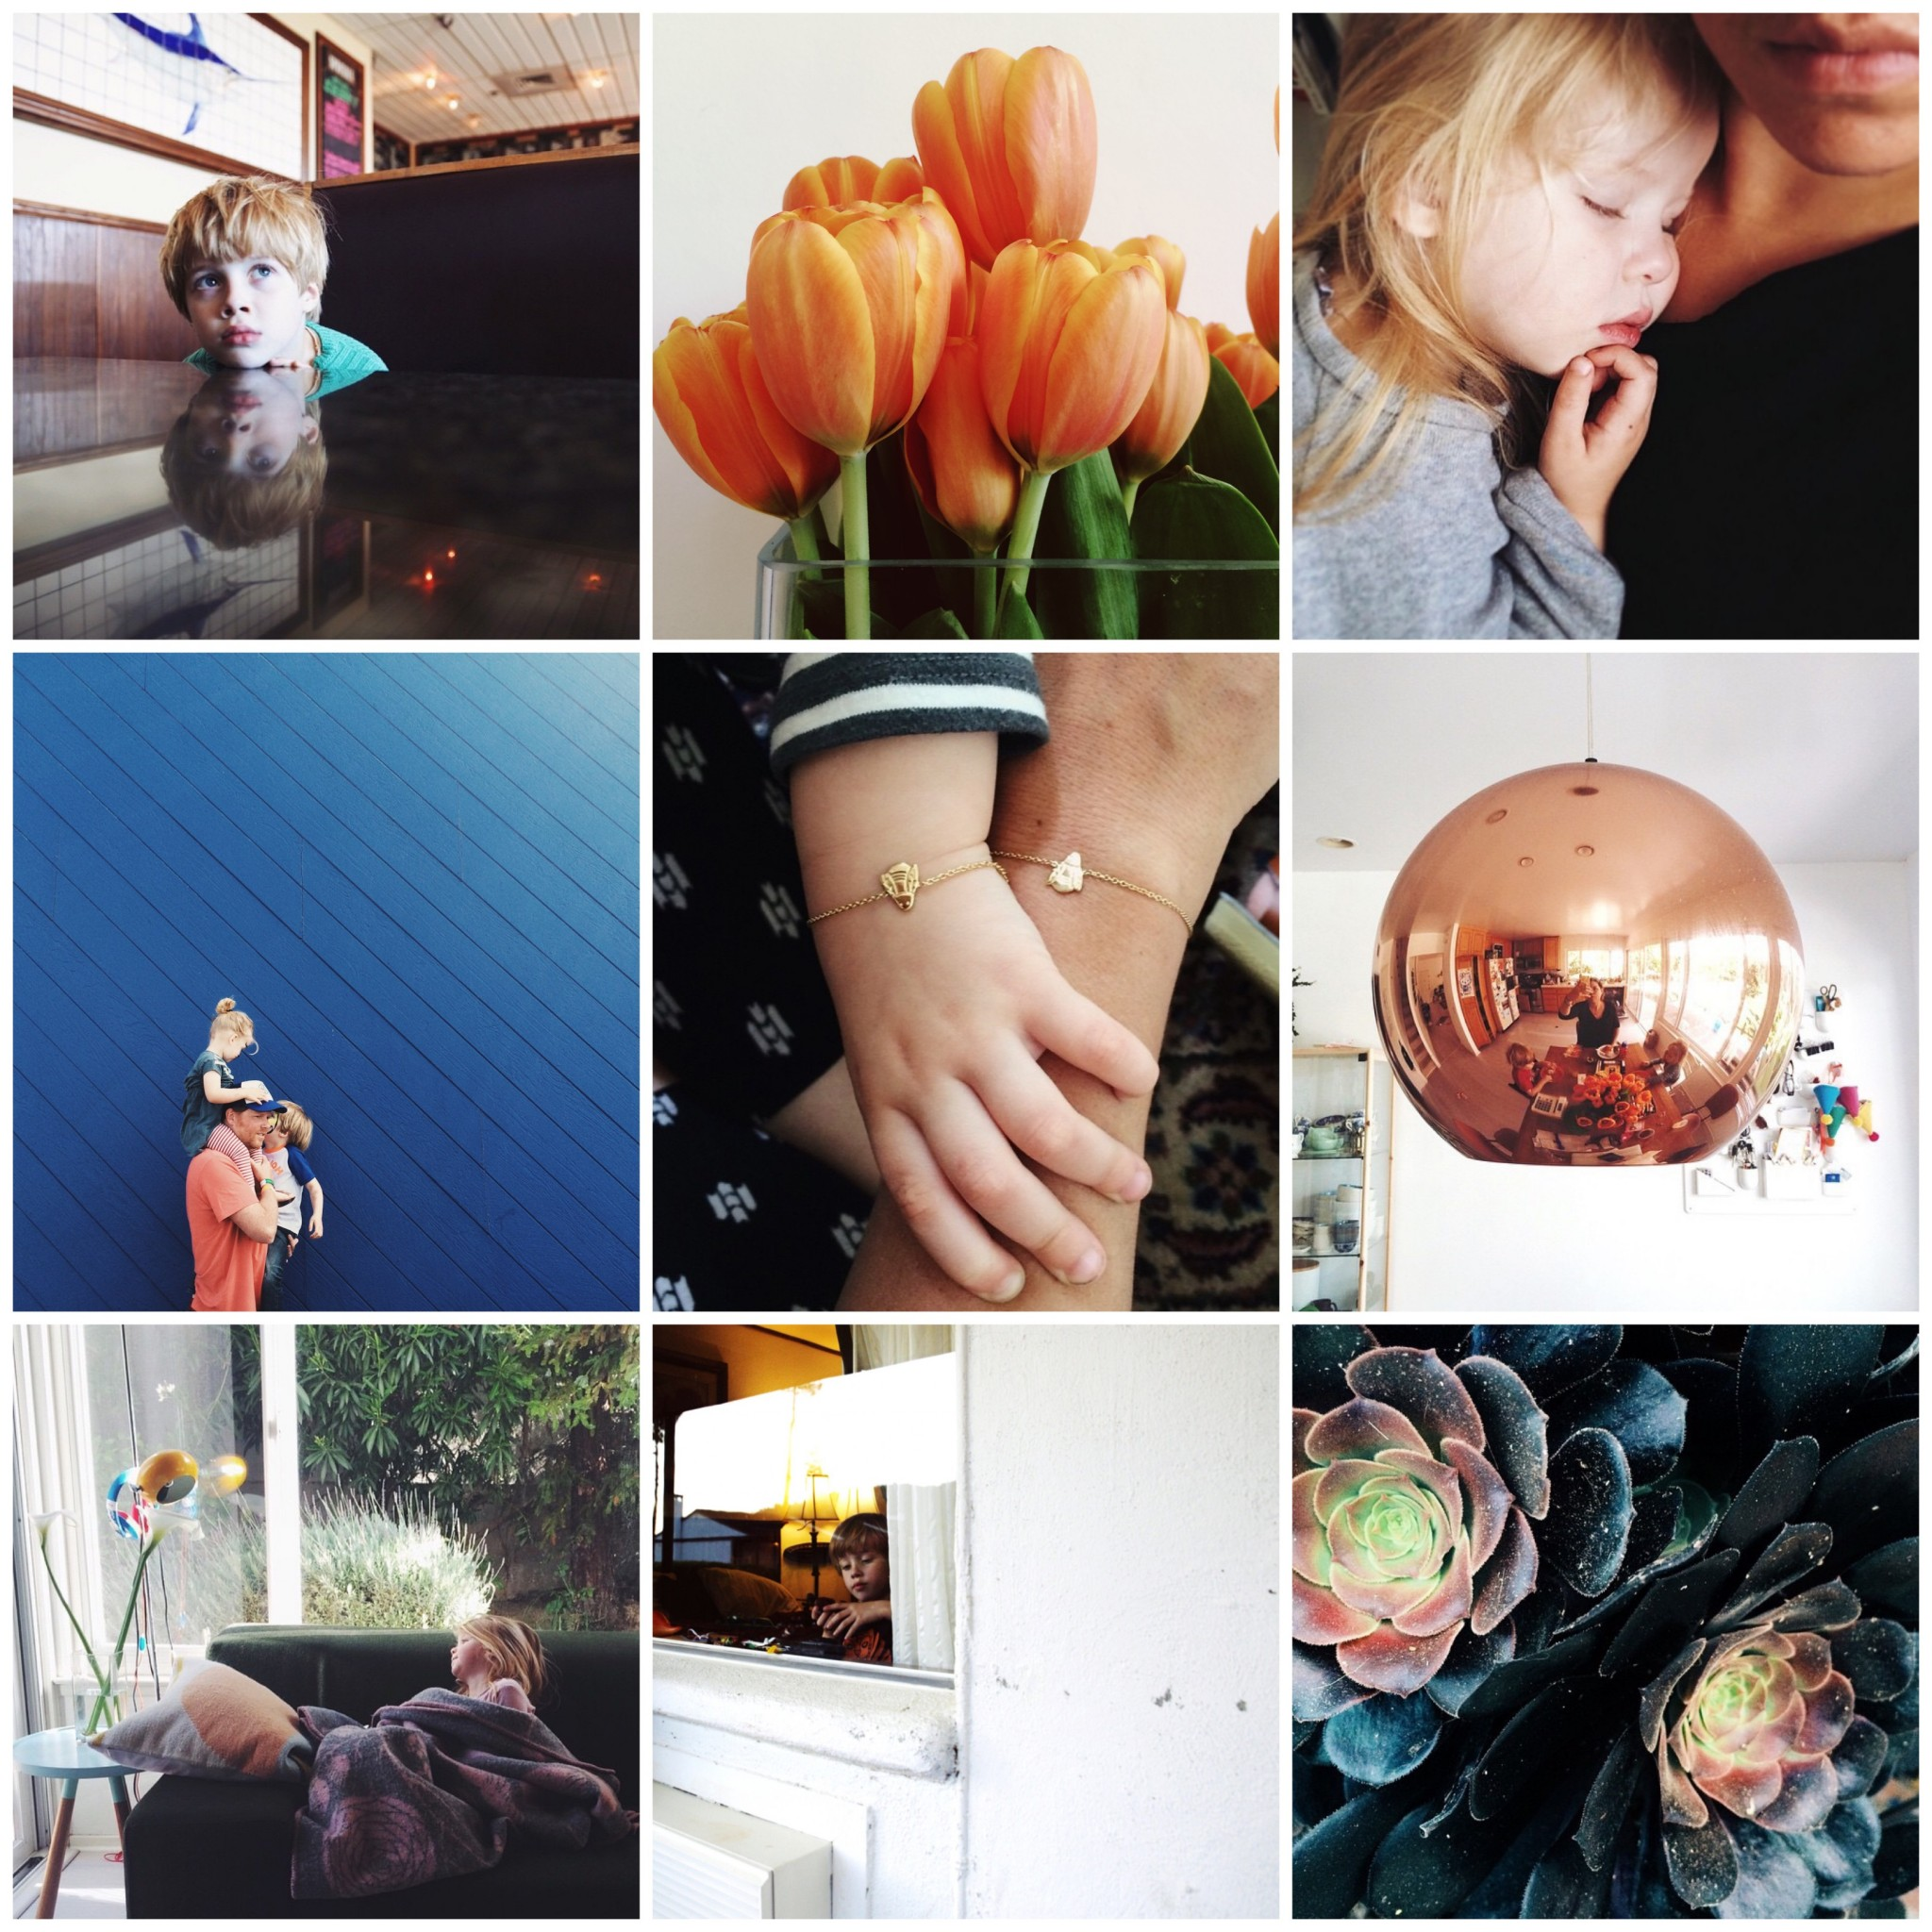 April on Instagram @madebylon